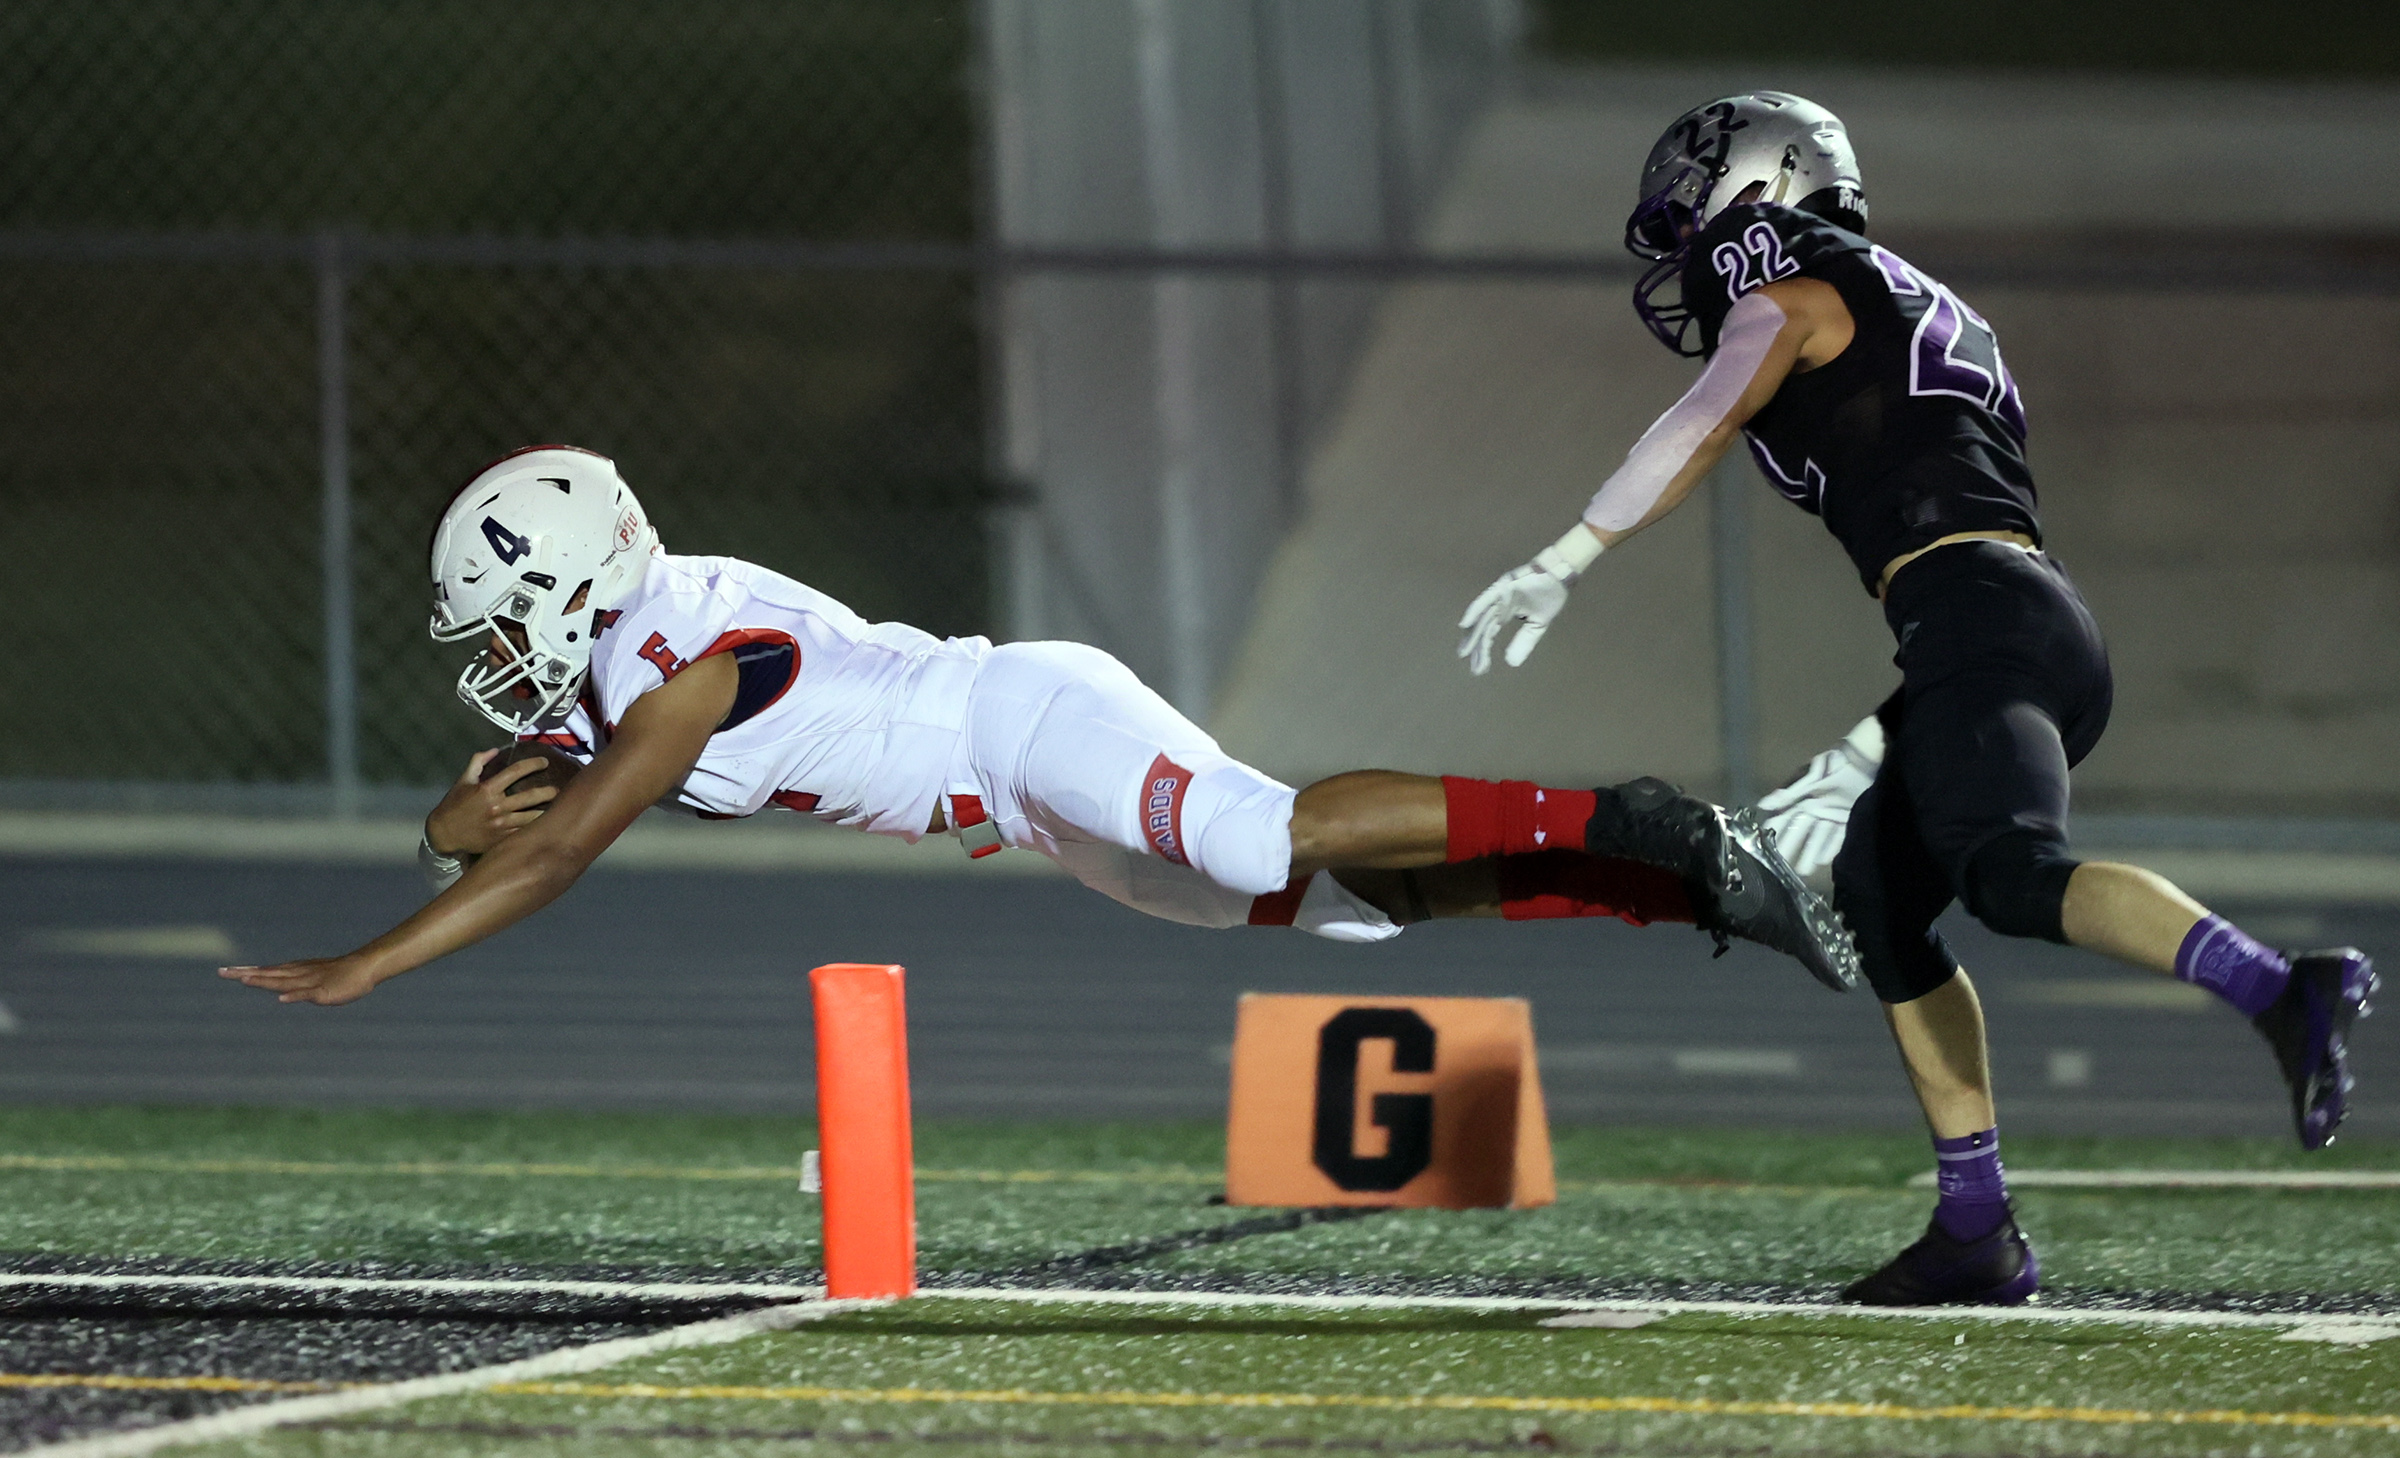 East's Siona Vailahi dives into the end zone for a score with Riverton's Colin Hauge chasing from behind as East and Riverton play a high school football game in Riverton on Friday, Oct. 9, 2020. East won 36-20.